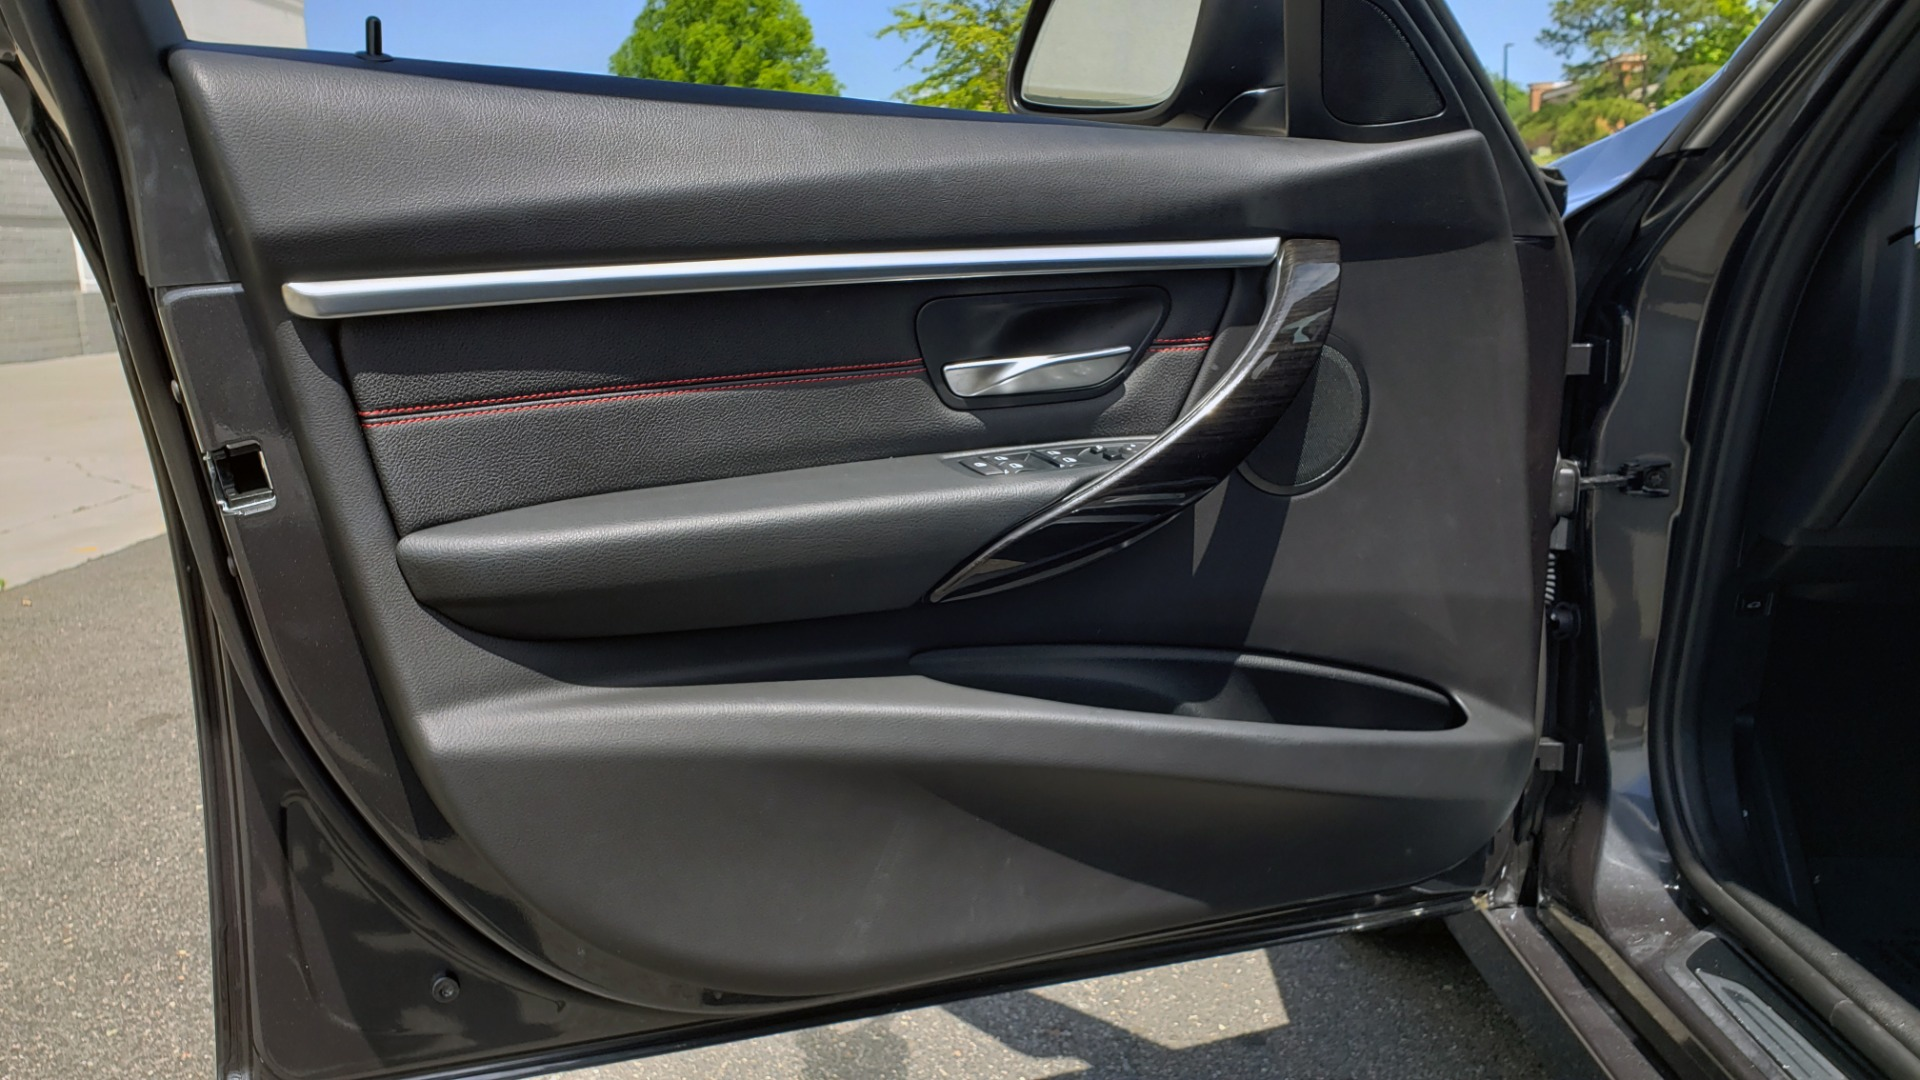 Used 2018 BMW 3 SERIES 330I XDRIVE / CONV PKG / SUNROOF / SPORT STS / HTD STS / REARVIEW for sale $28,495 at Formula Imports in Charlotte NC 28227 29